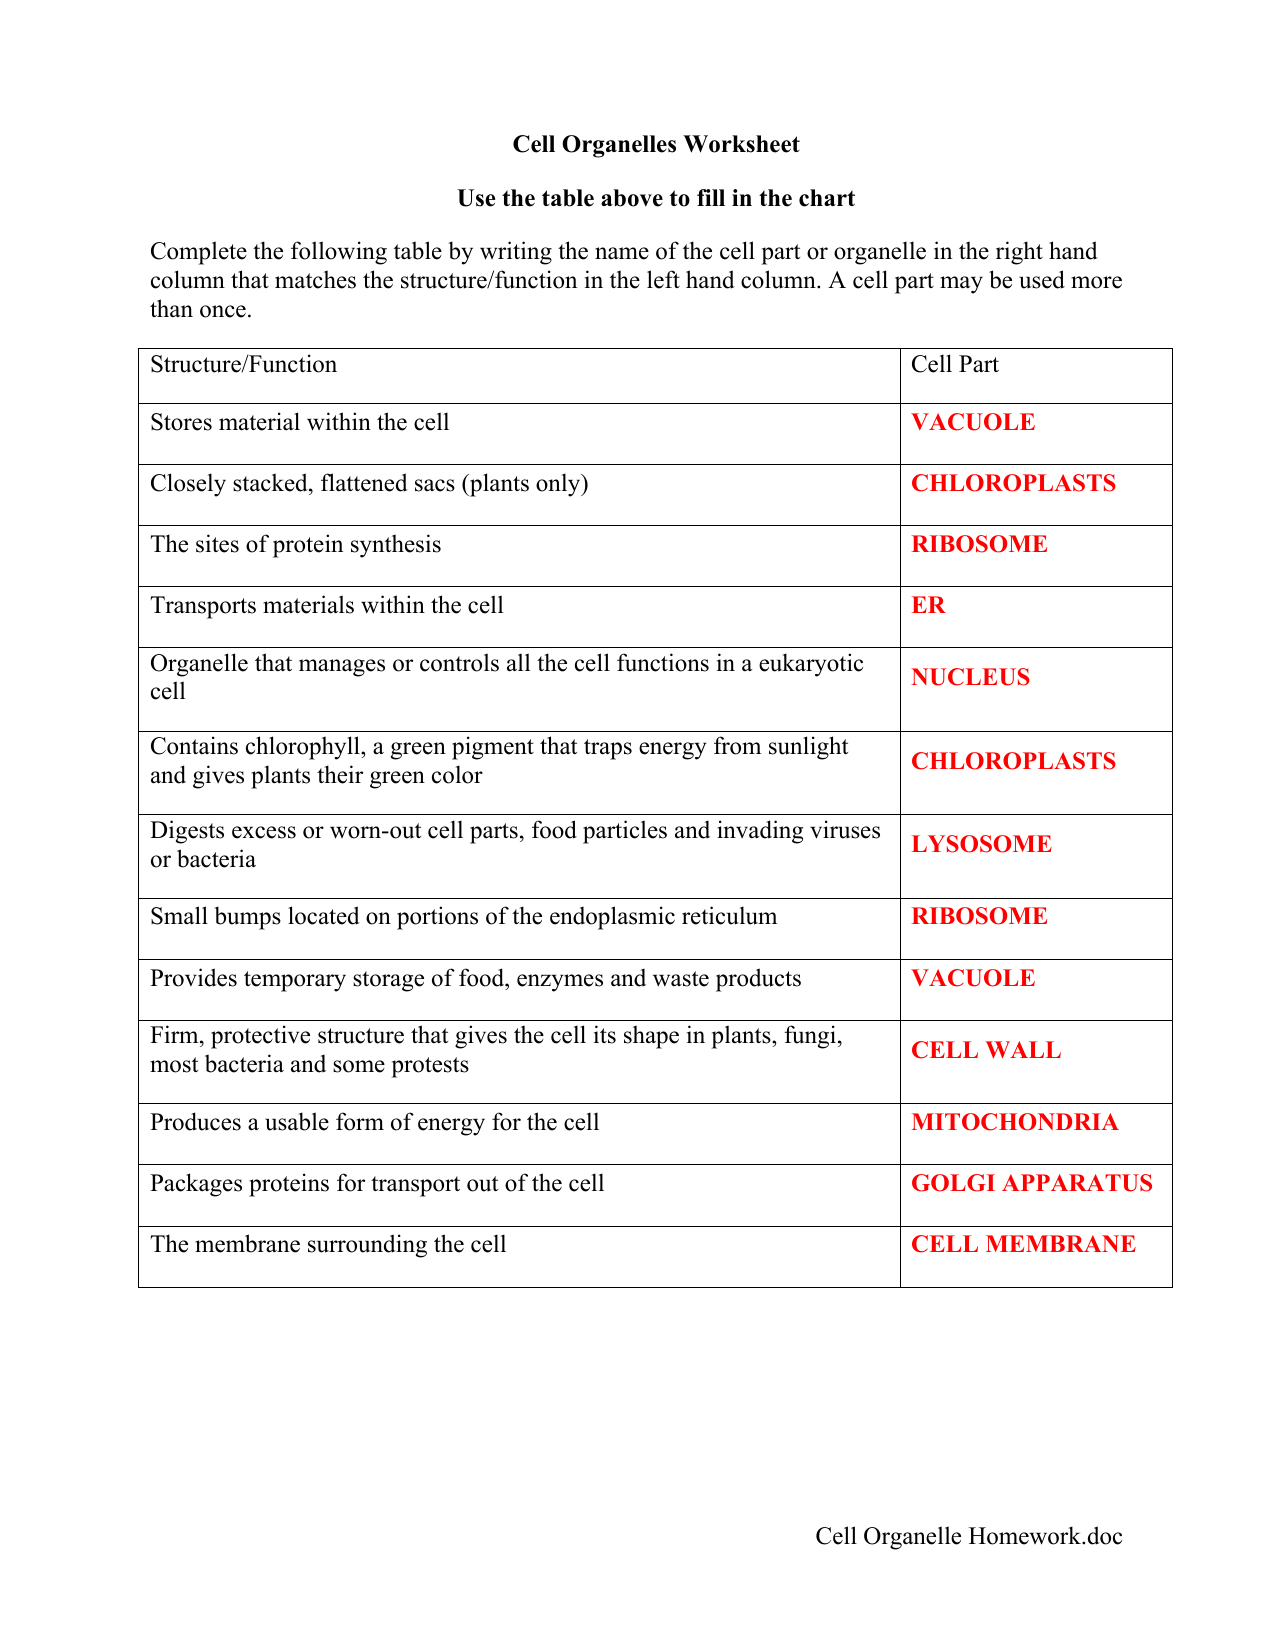 Cell Organelle Homeworkdoc Cell Organelles Worksheet Together With Cell Structure And Function Worksheet